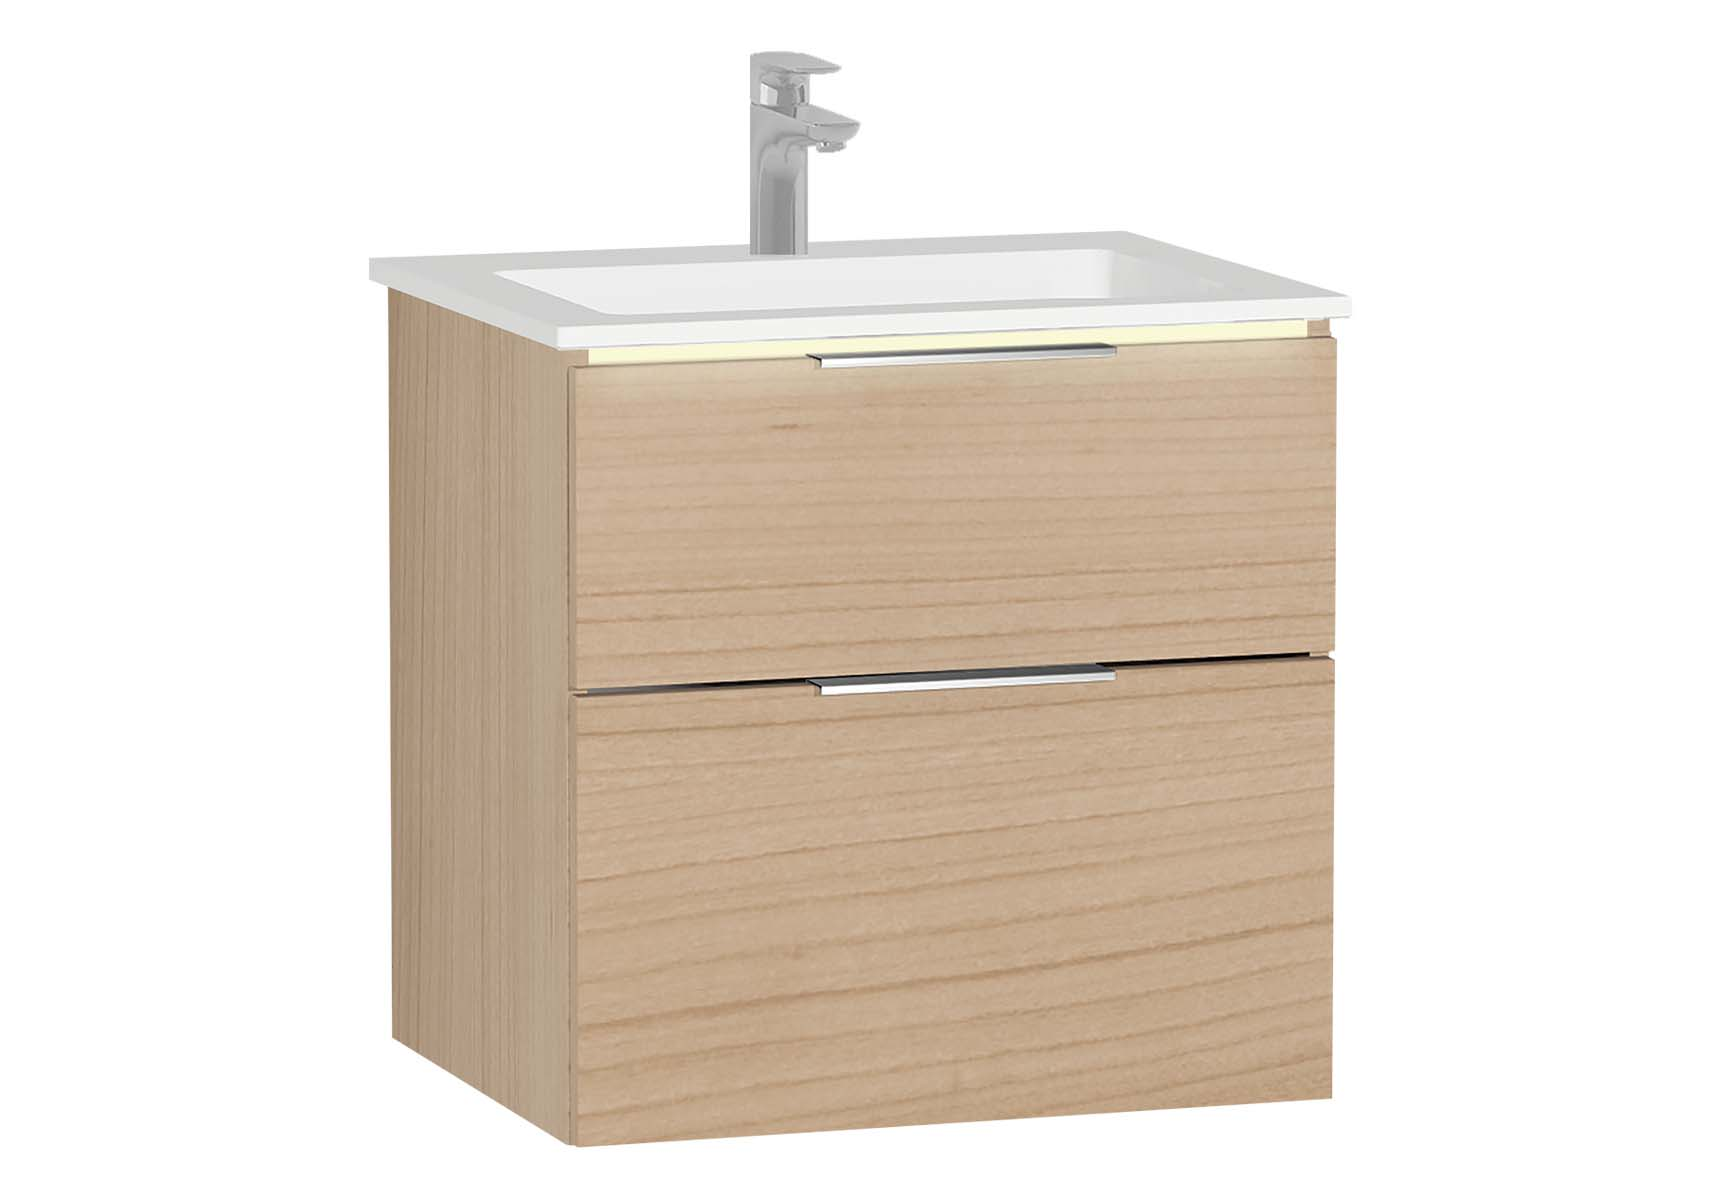 Central Washbasin Unit with 2 drawers, 60 cm, White High Gloss, Infinit Washbasin, Led